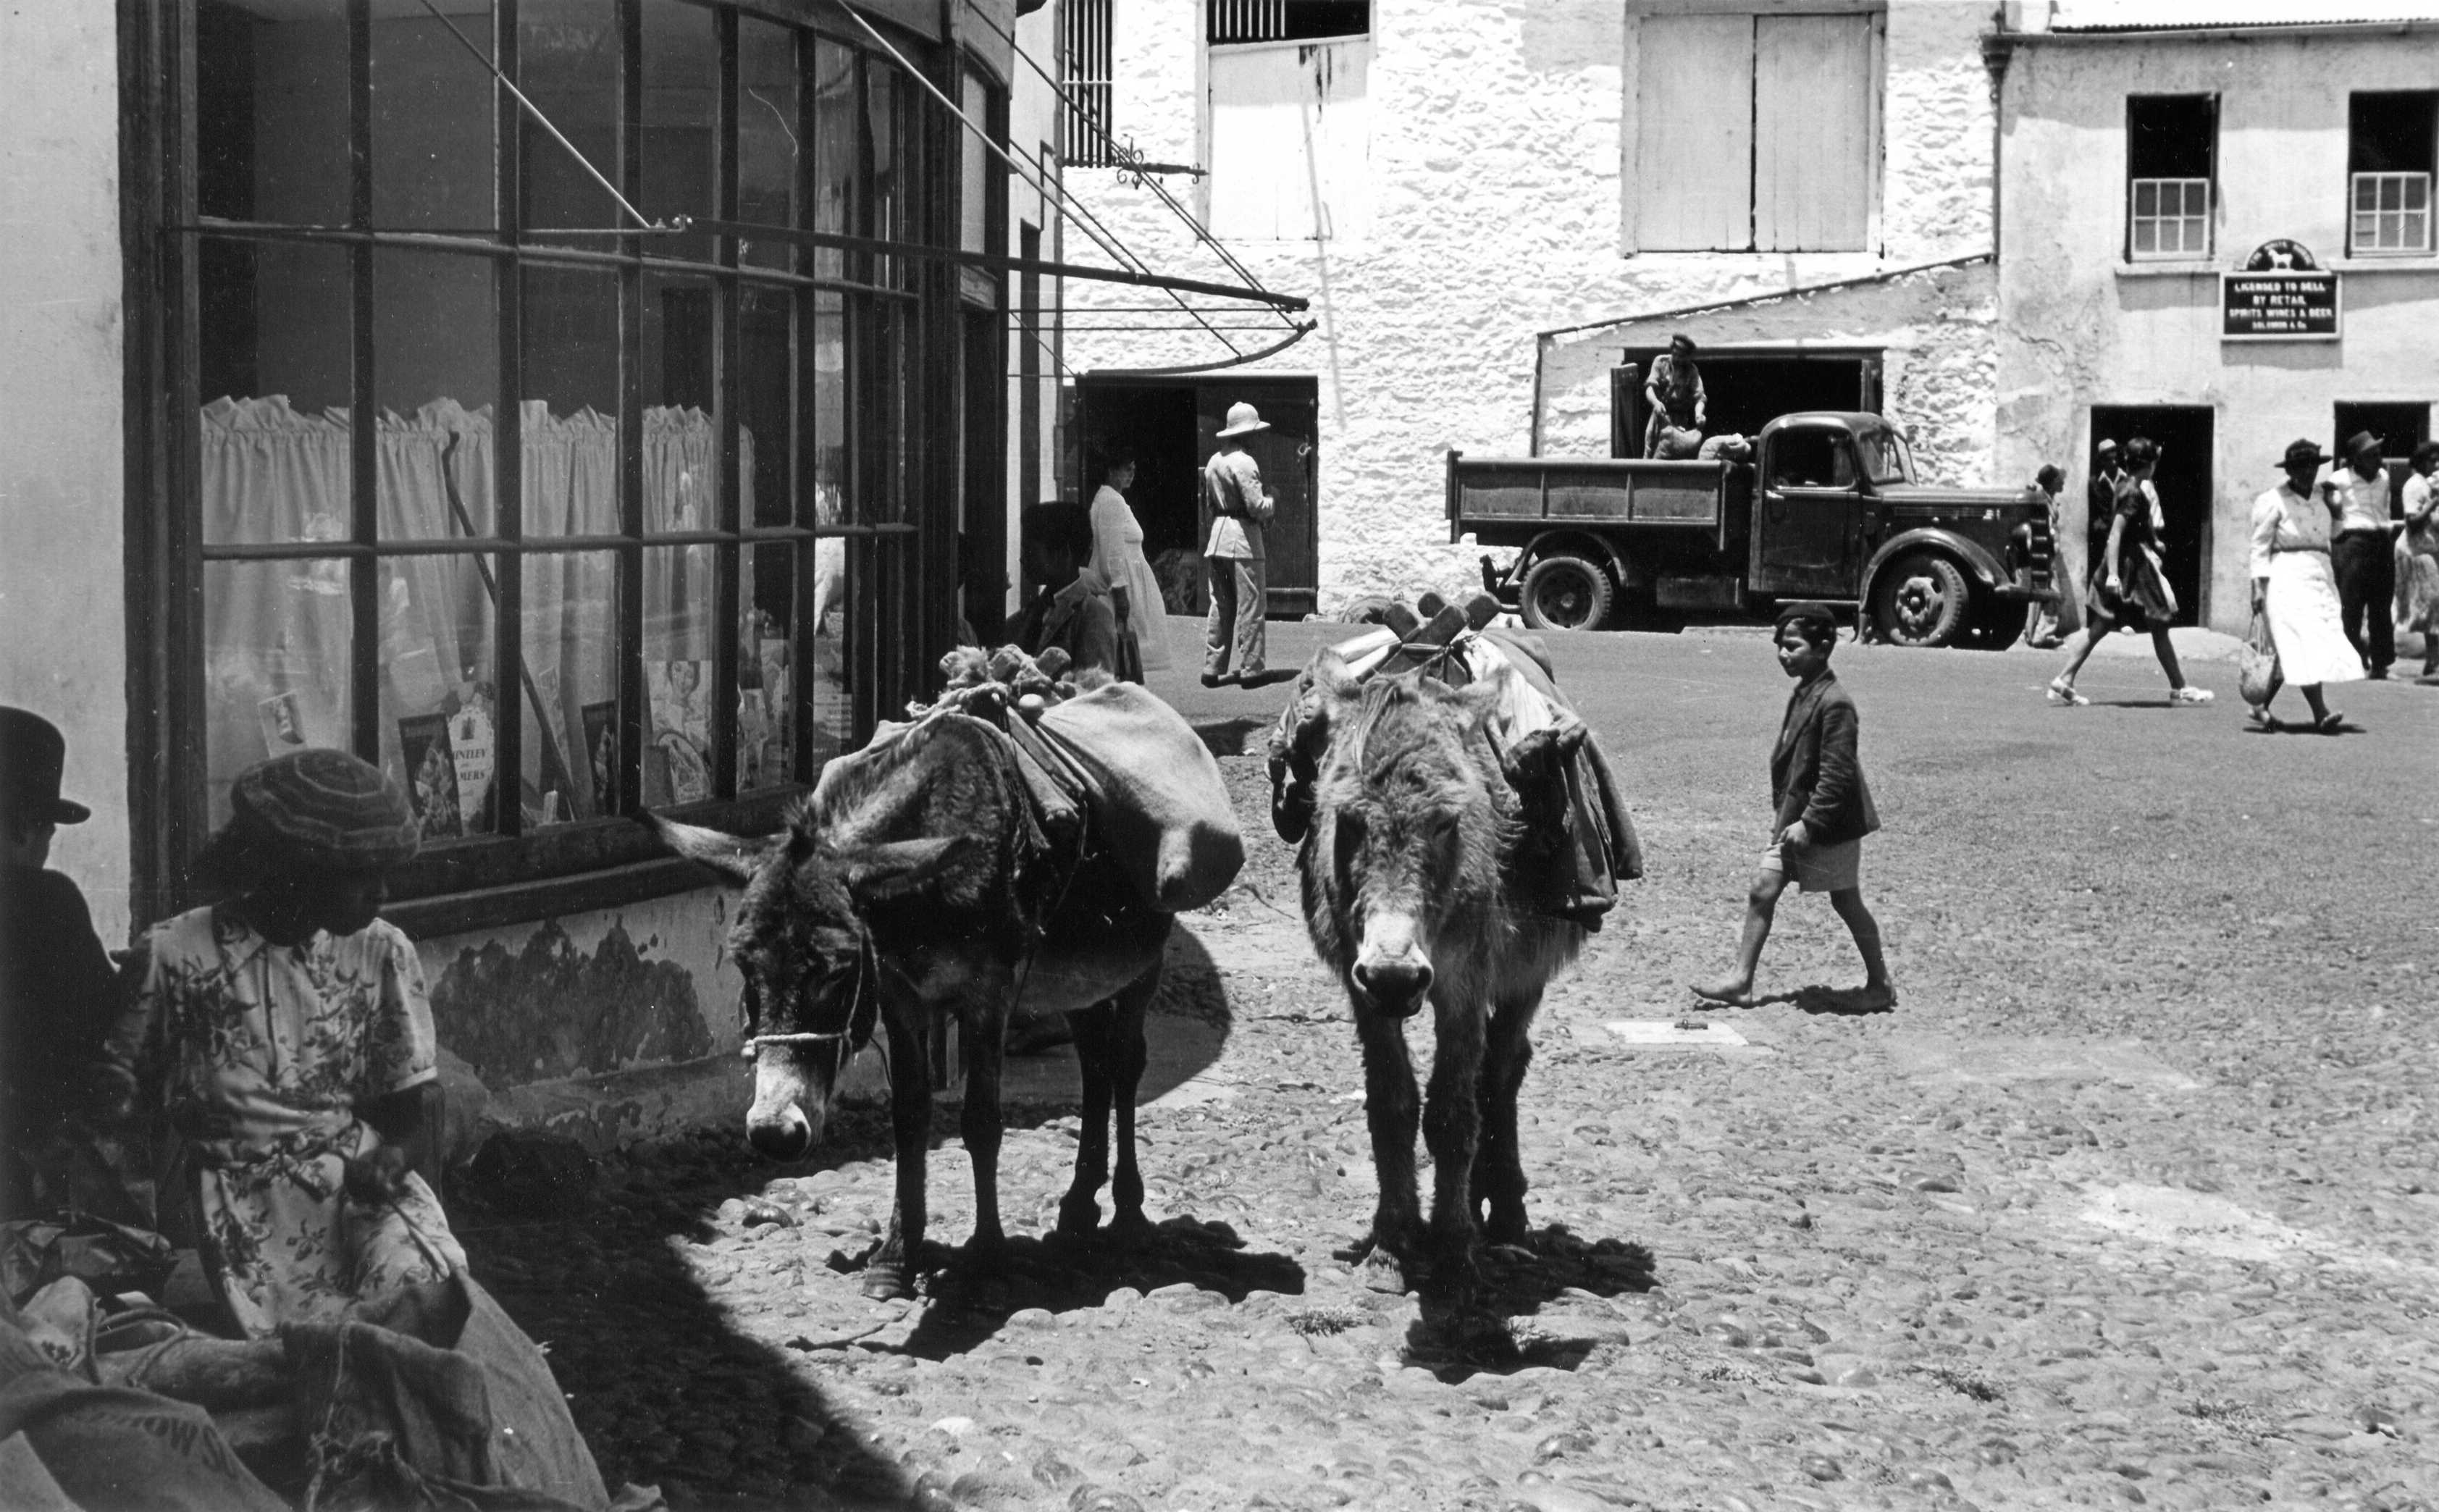 Donkeys at work in Jamestown, in the 1950s